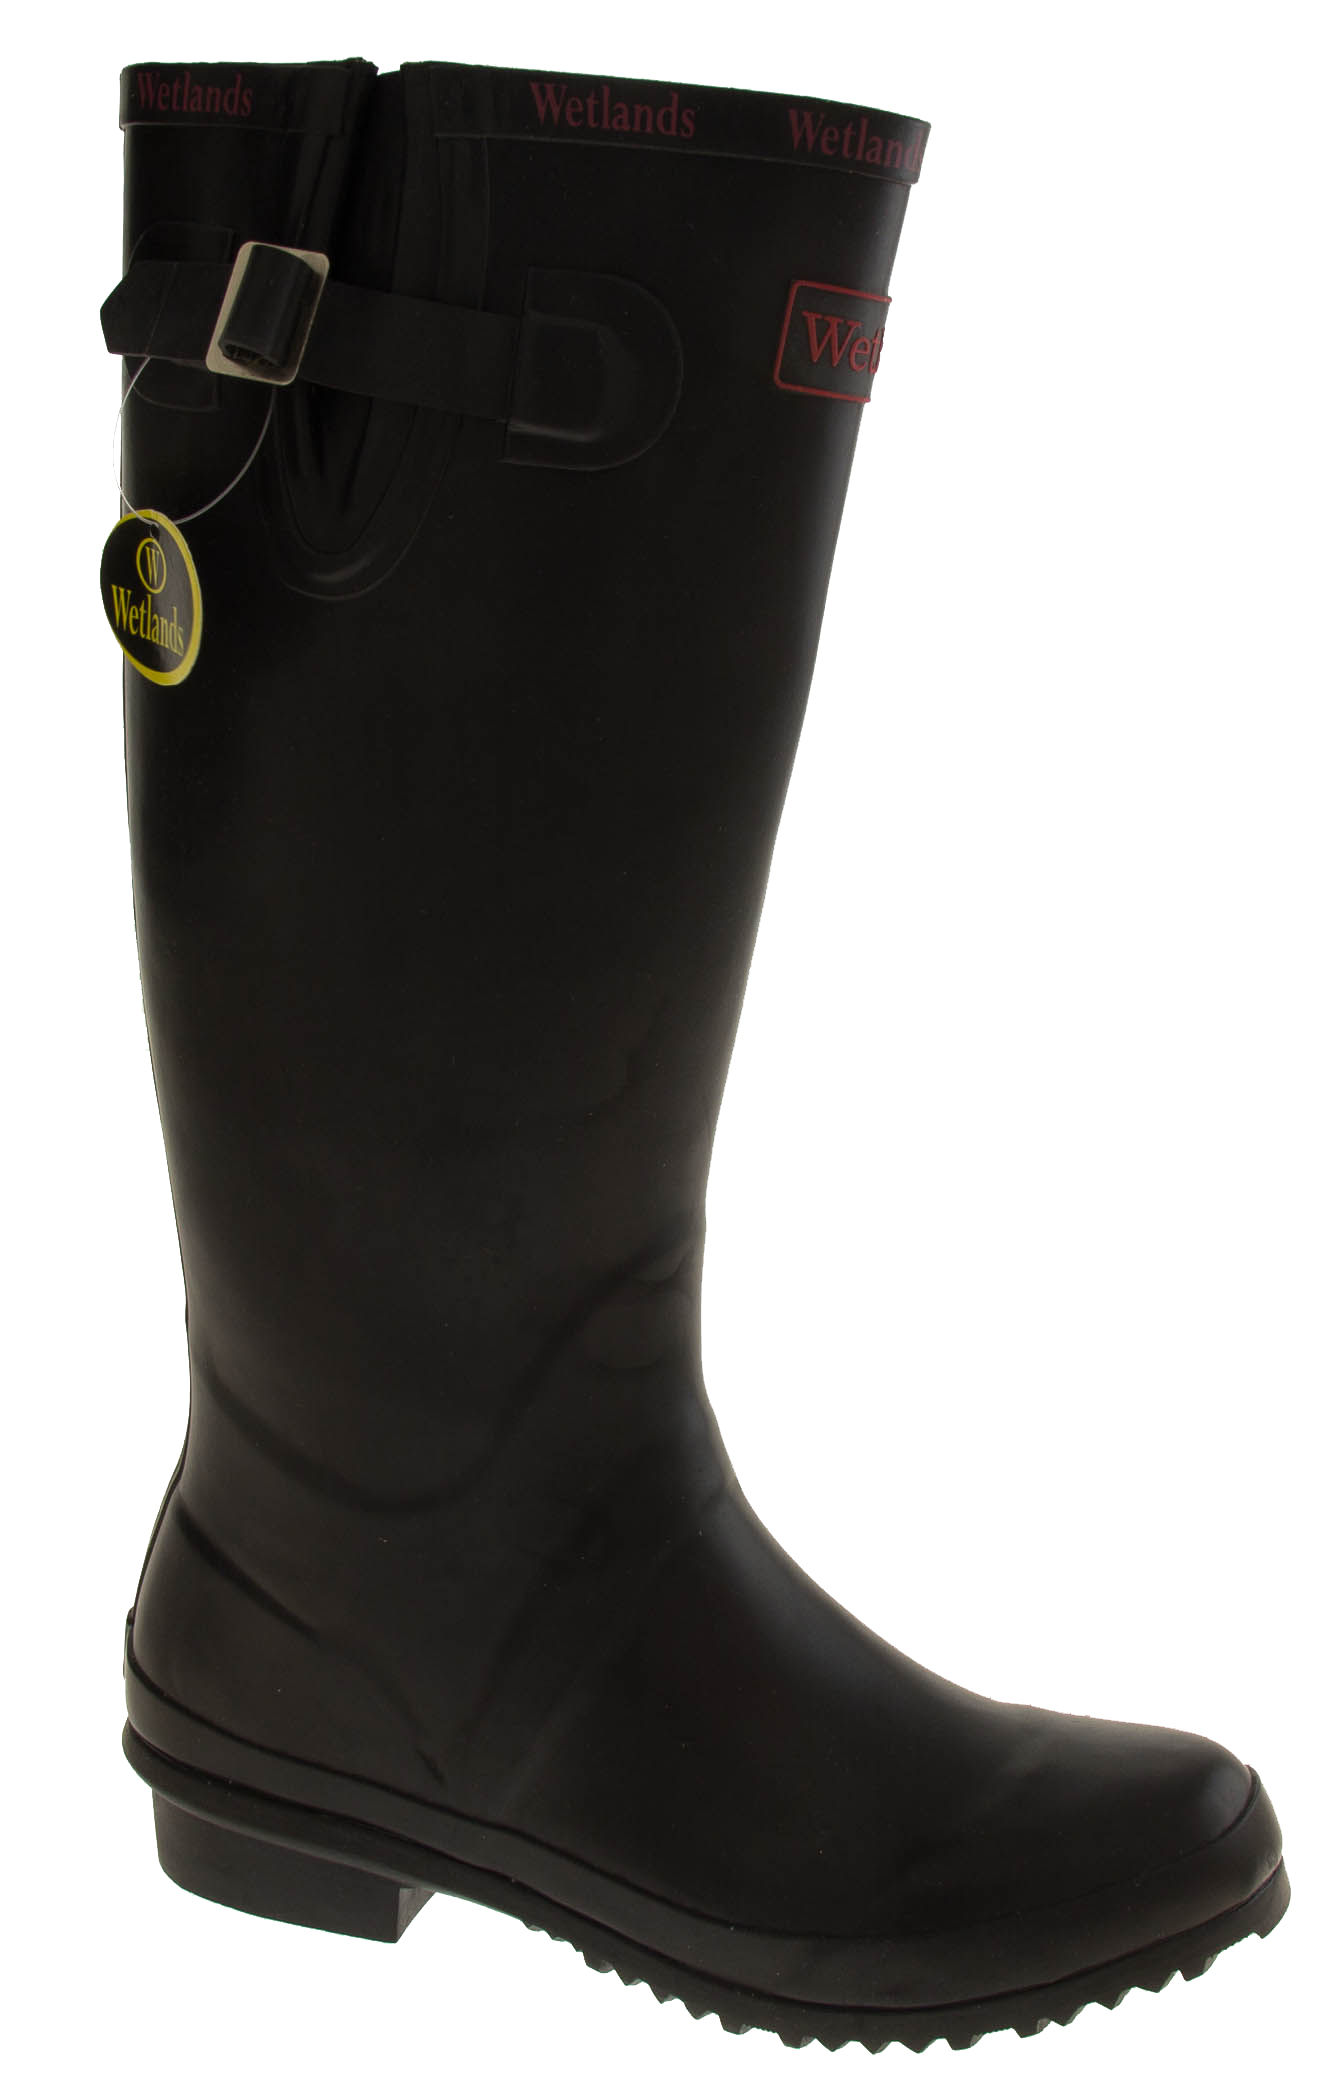 New women black wetlands knee high festival garden wellies for Garden boots for women